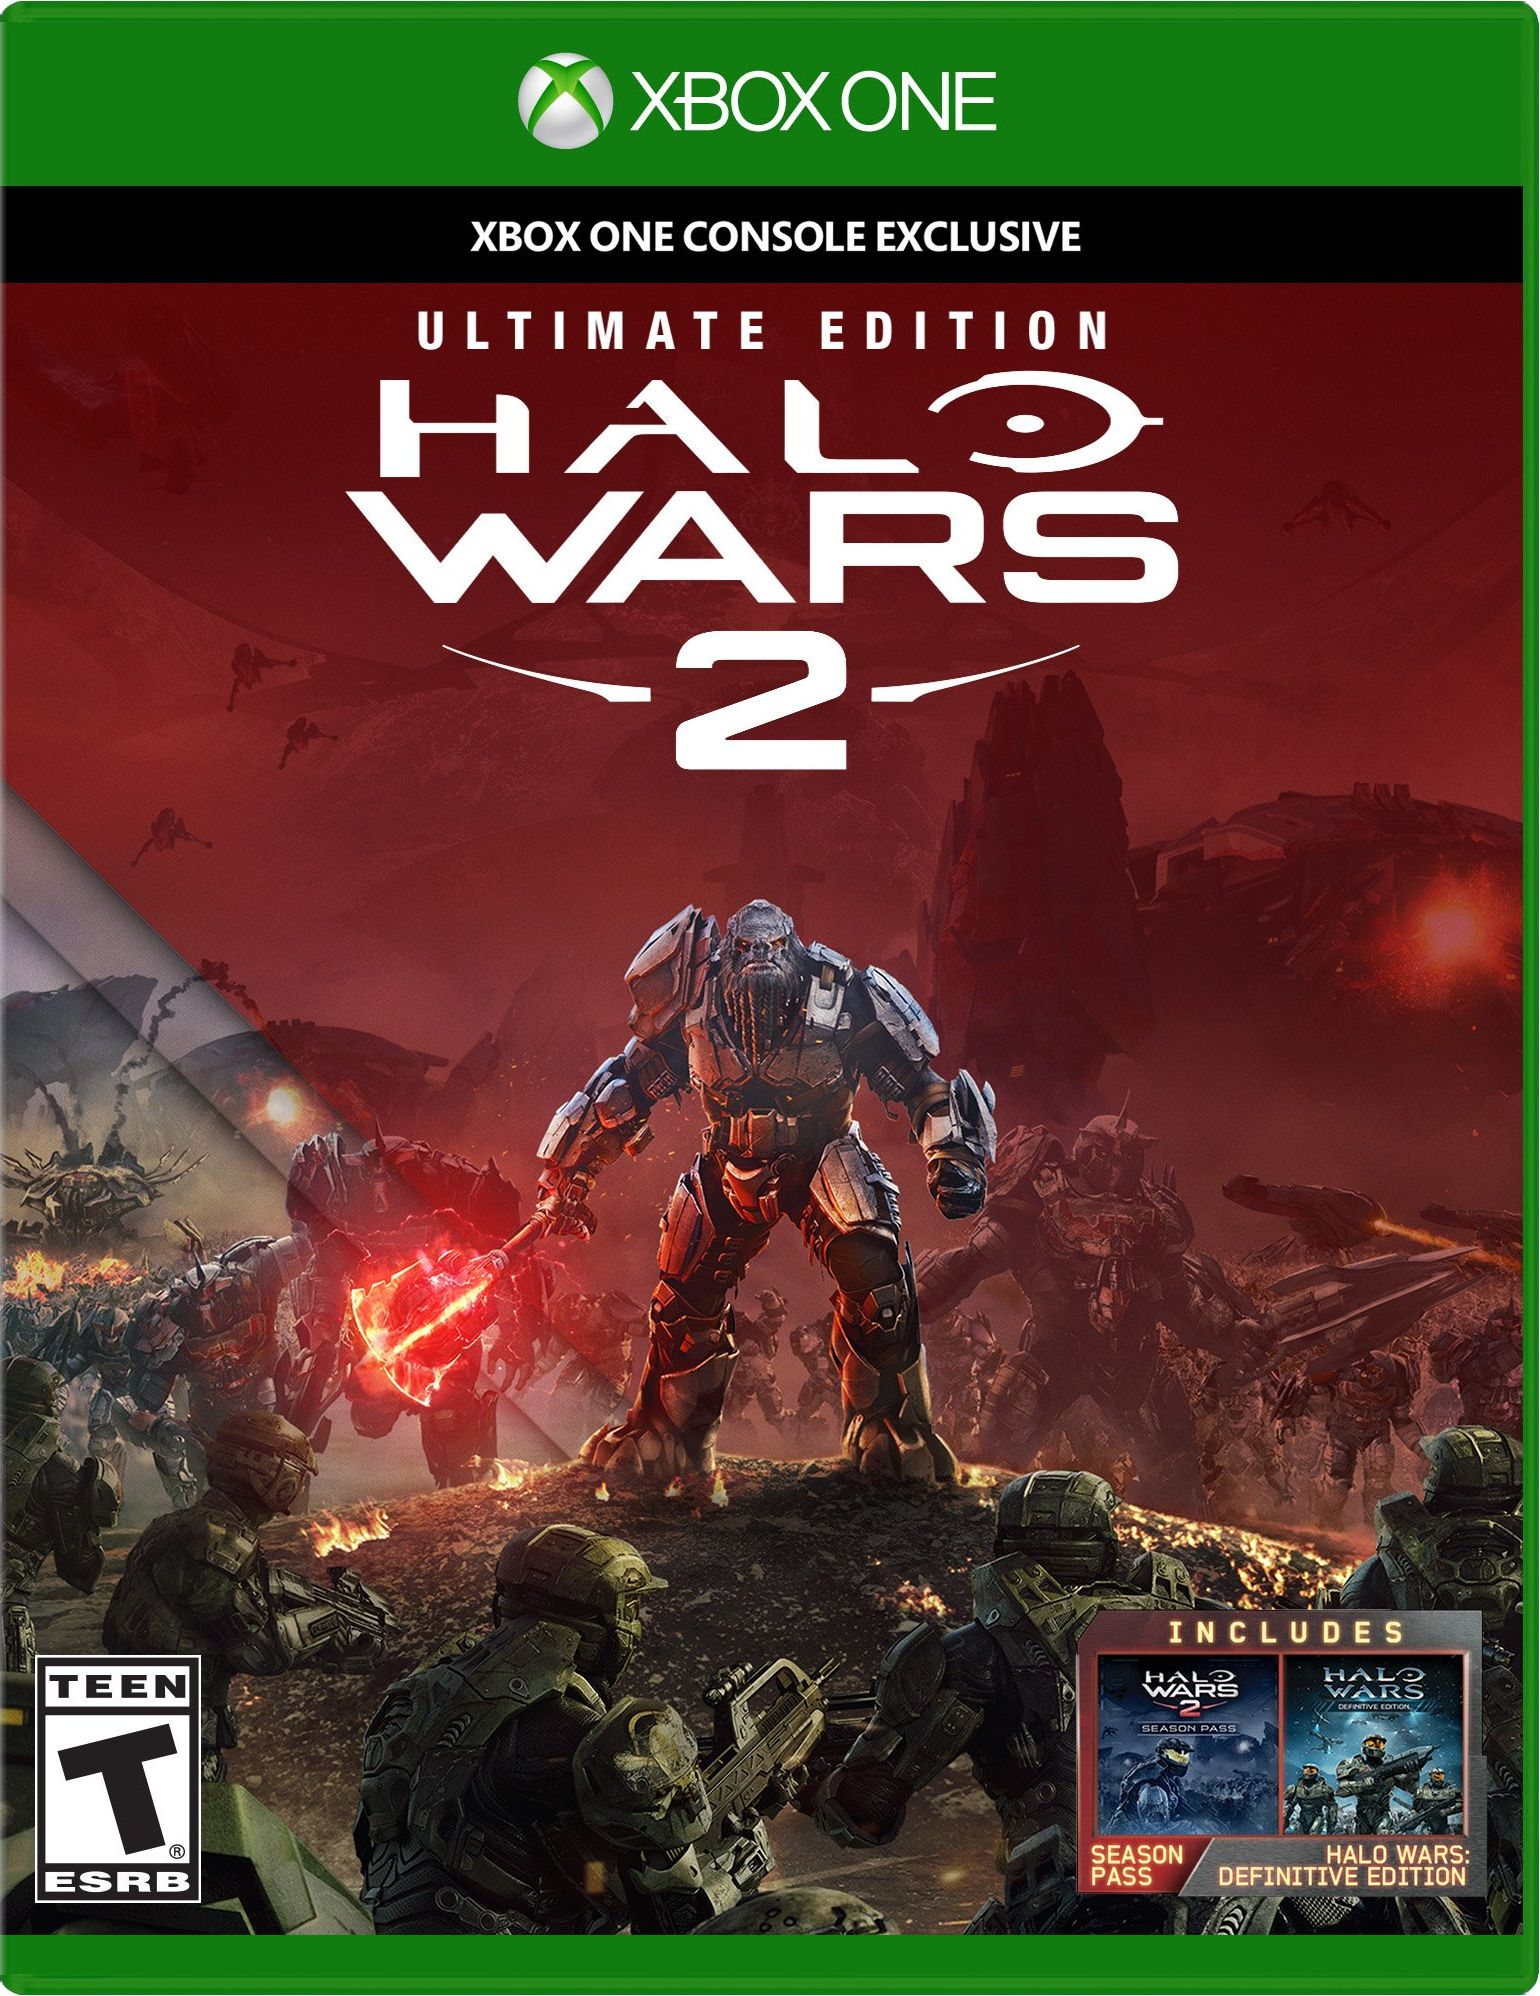 Halo Wars 2 Release Date (PC, Xbox One)